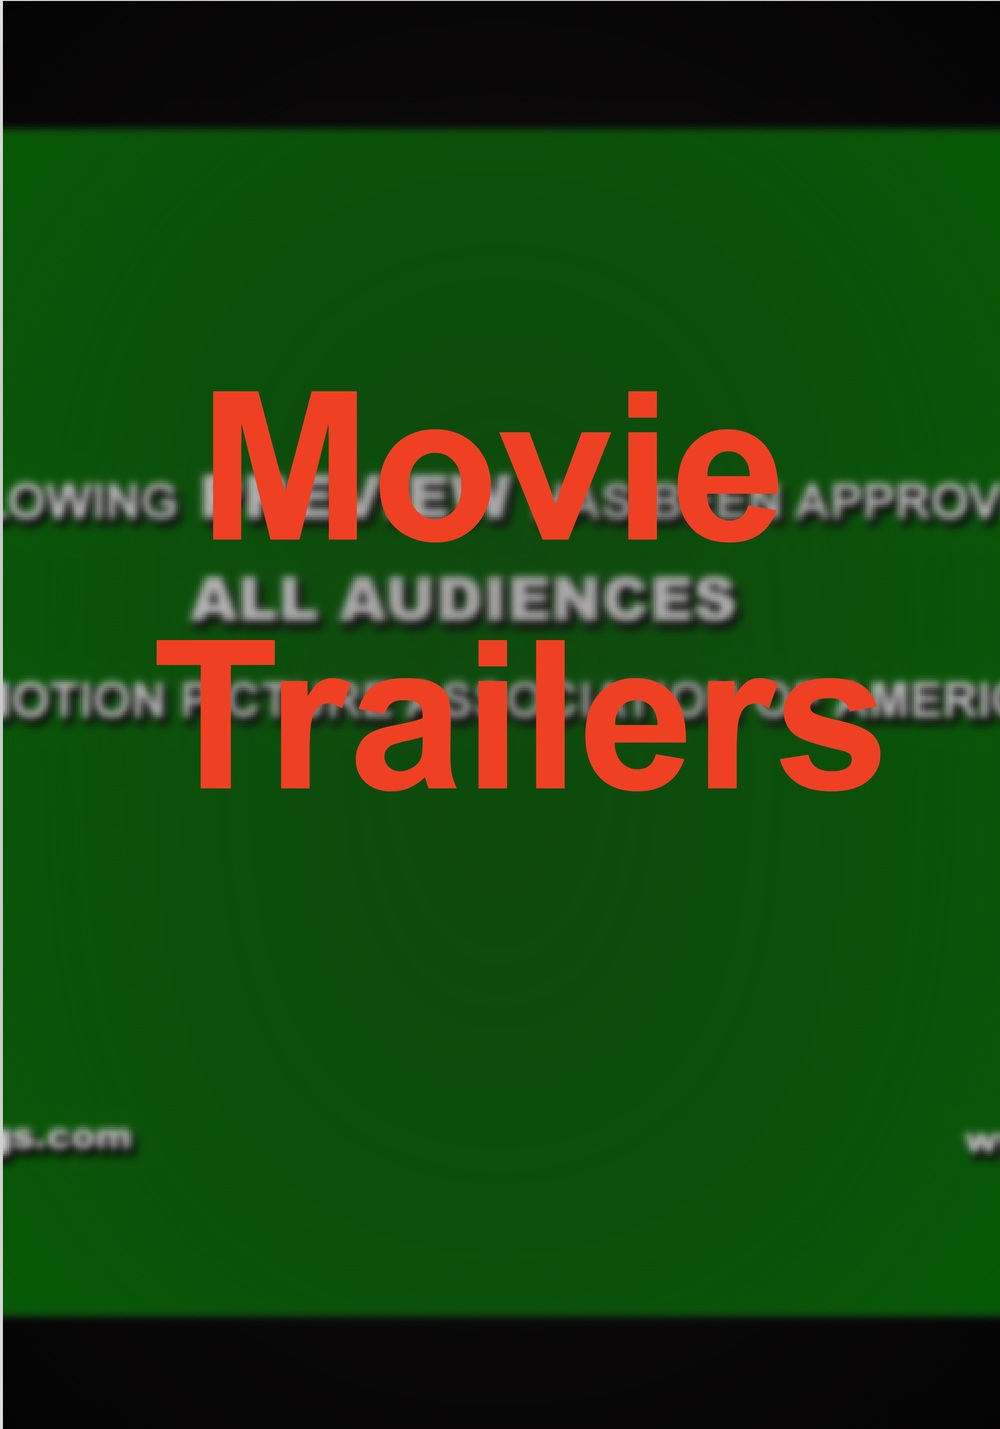 filmmaker_make_a_movie_trailer.jpg